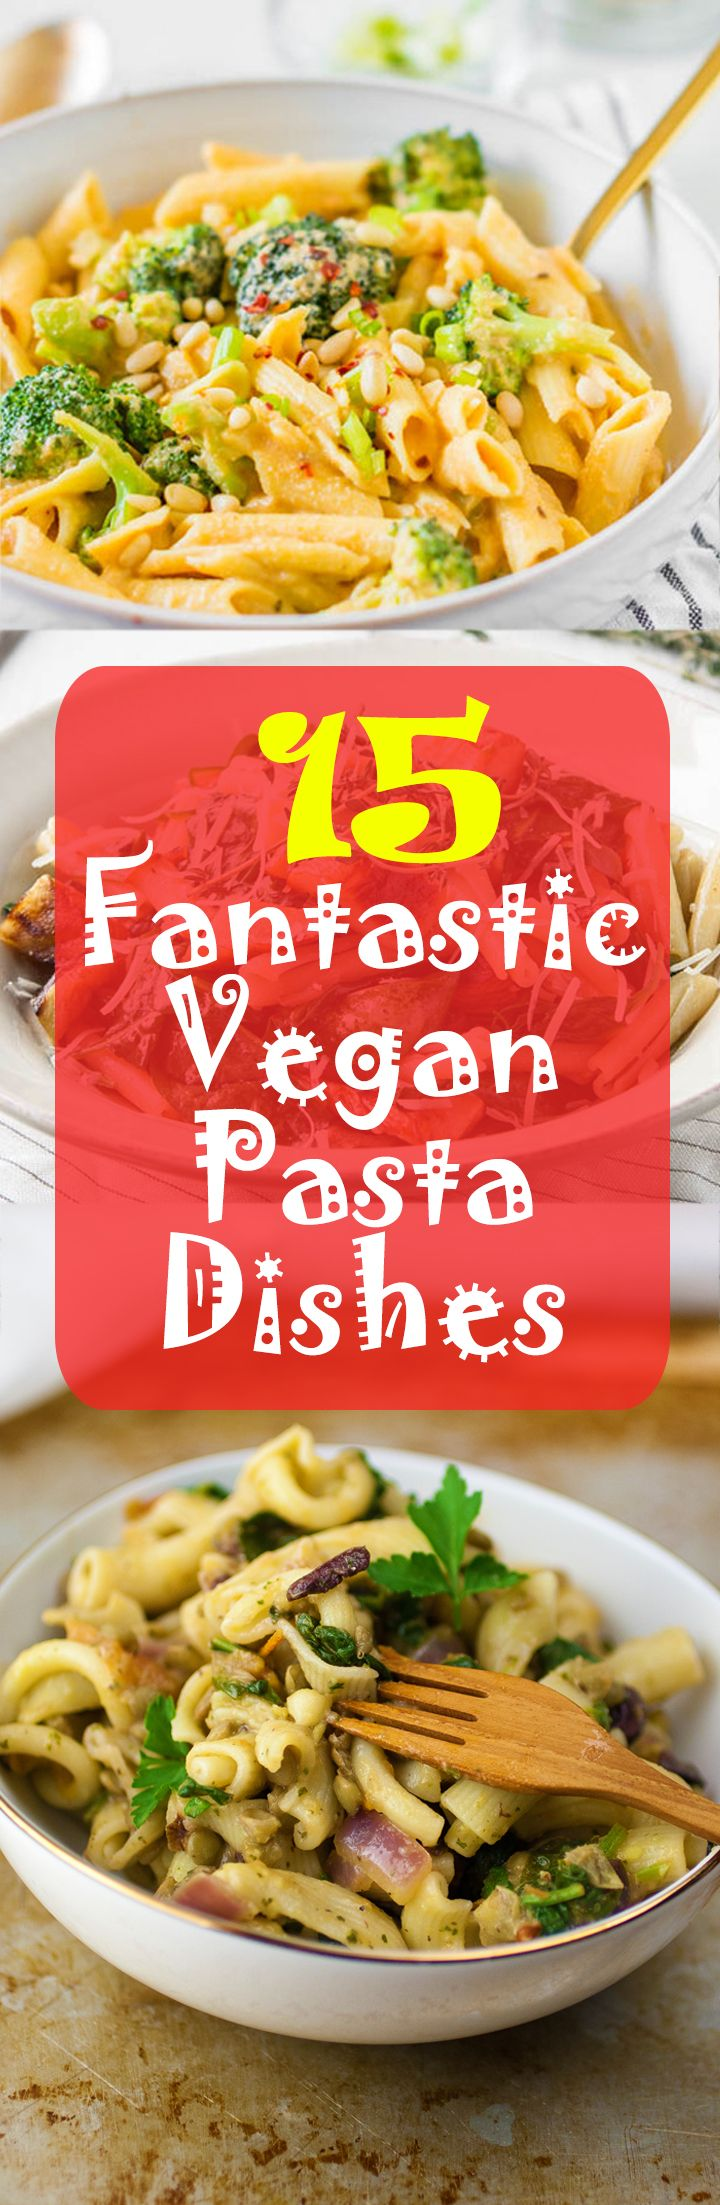 15 of the most delicious Vegan Pasta Dishes of 2014! Check them out! #vegan #pasta #2014 #delicious